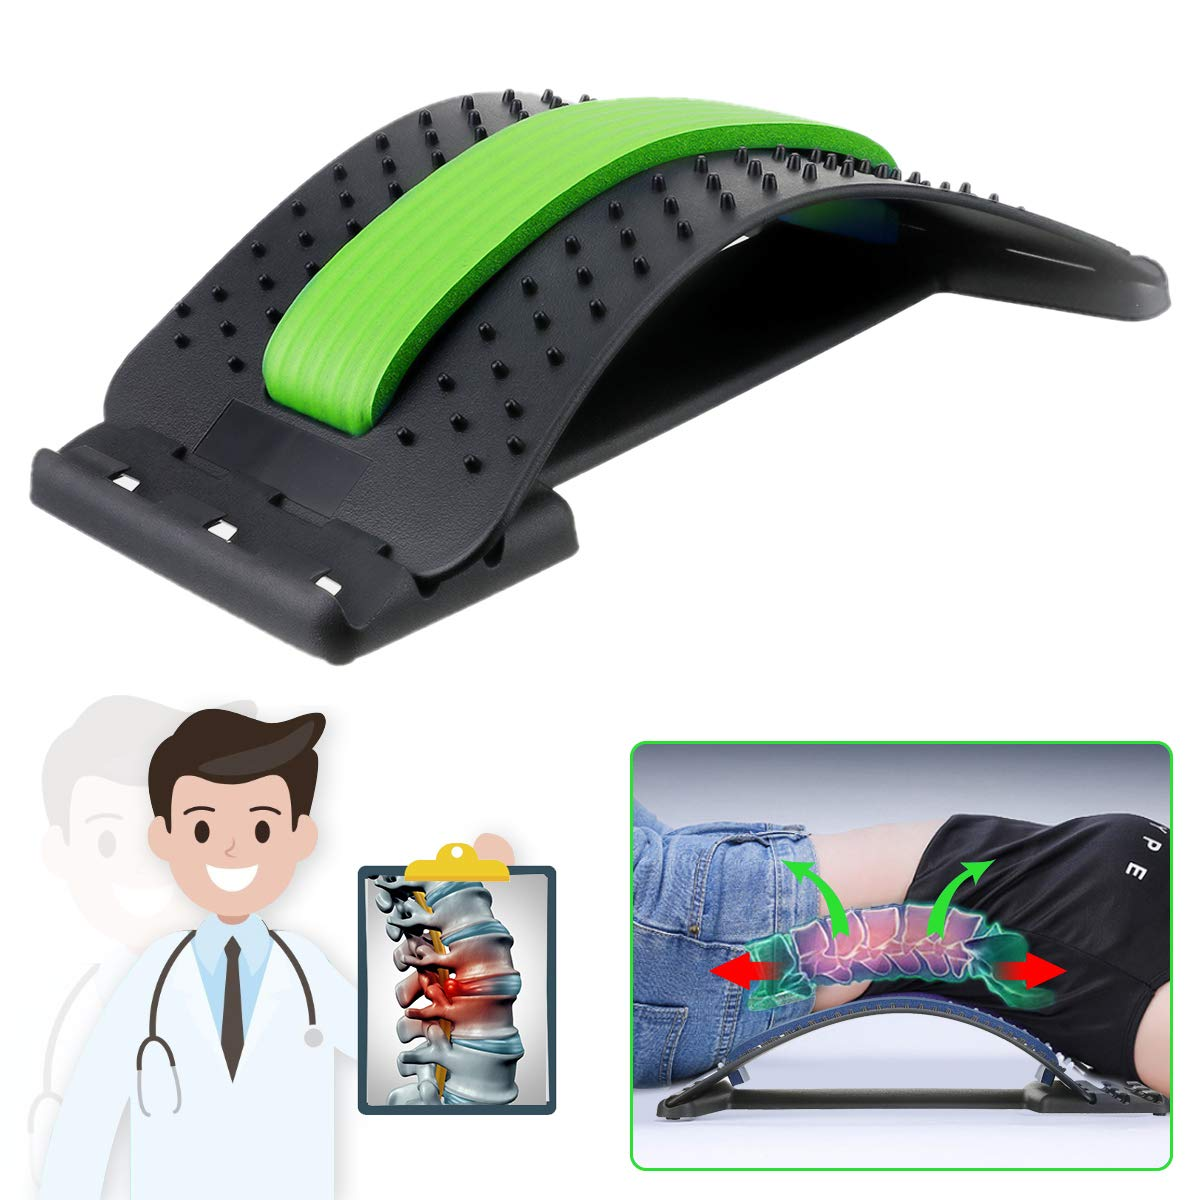 Back Stretcher, Lumbar Back Pain Relief, Multi-Level Lumbar Support Device, Back Massager Pain Relief, Lower and Upper Back Stretcher Support